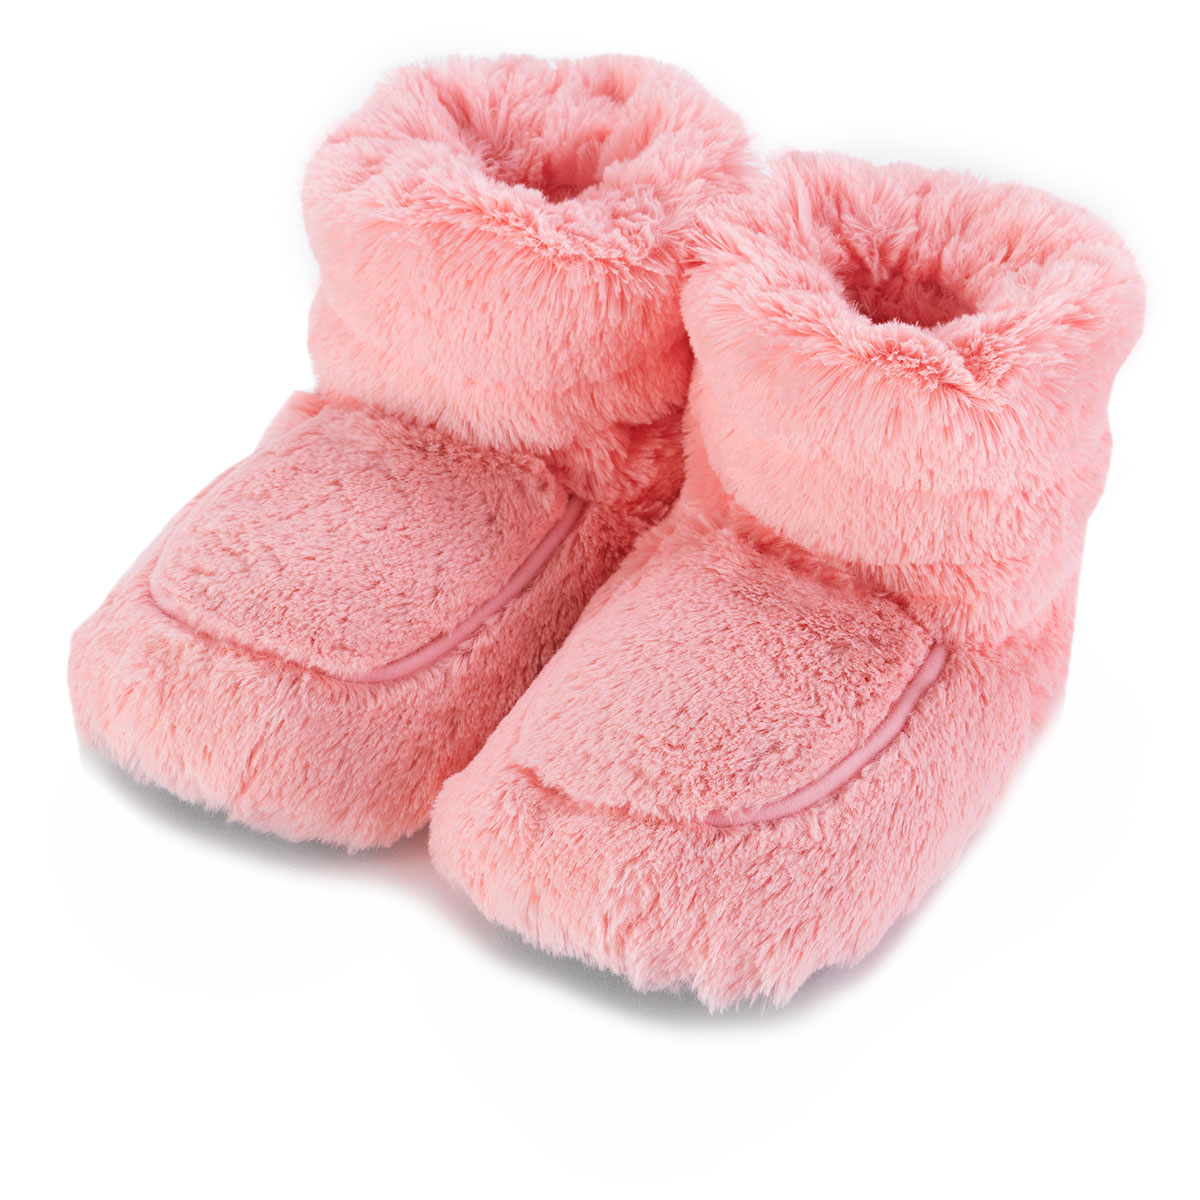 Cozy Boots™ Pink Microwavable Slipper Boots